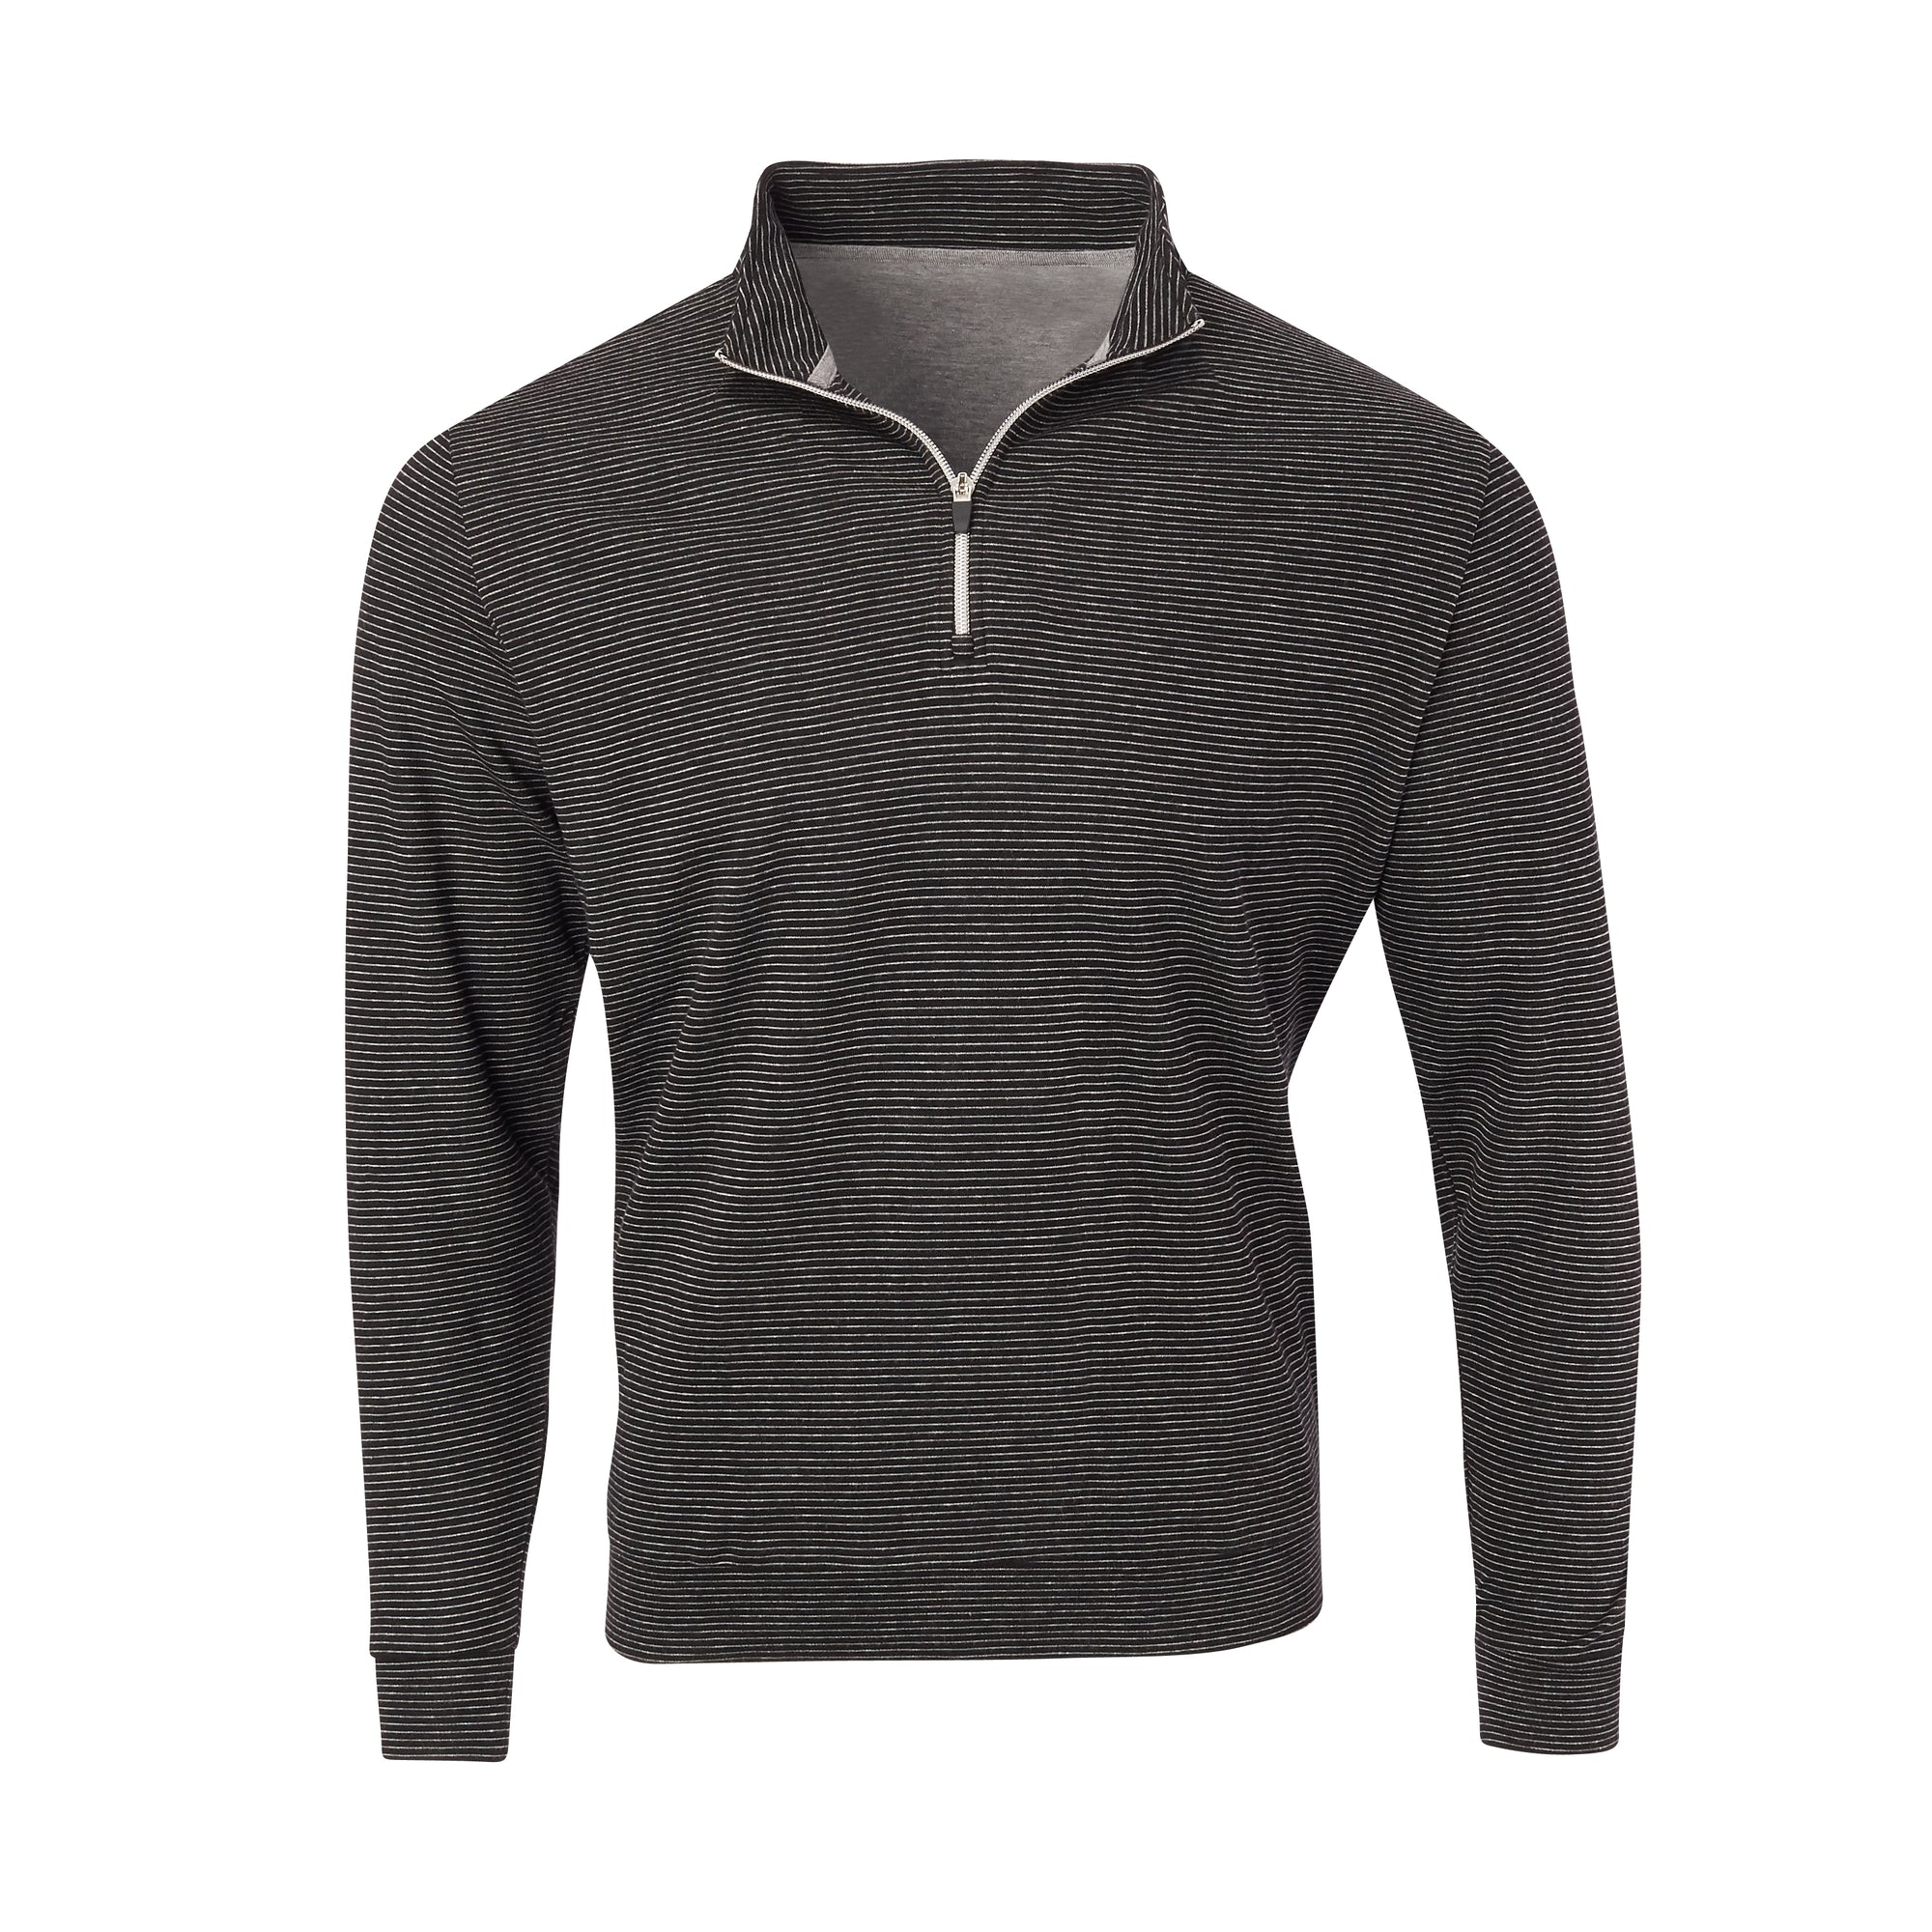 THE ASPEN LUXURY INTERLOCK HALF ZIP PULLOVER - Black/Silver 77304HZ